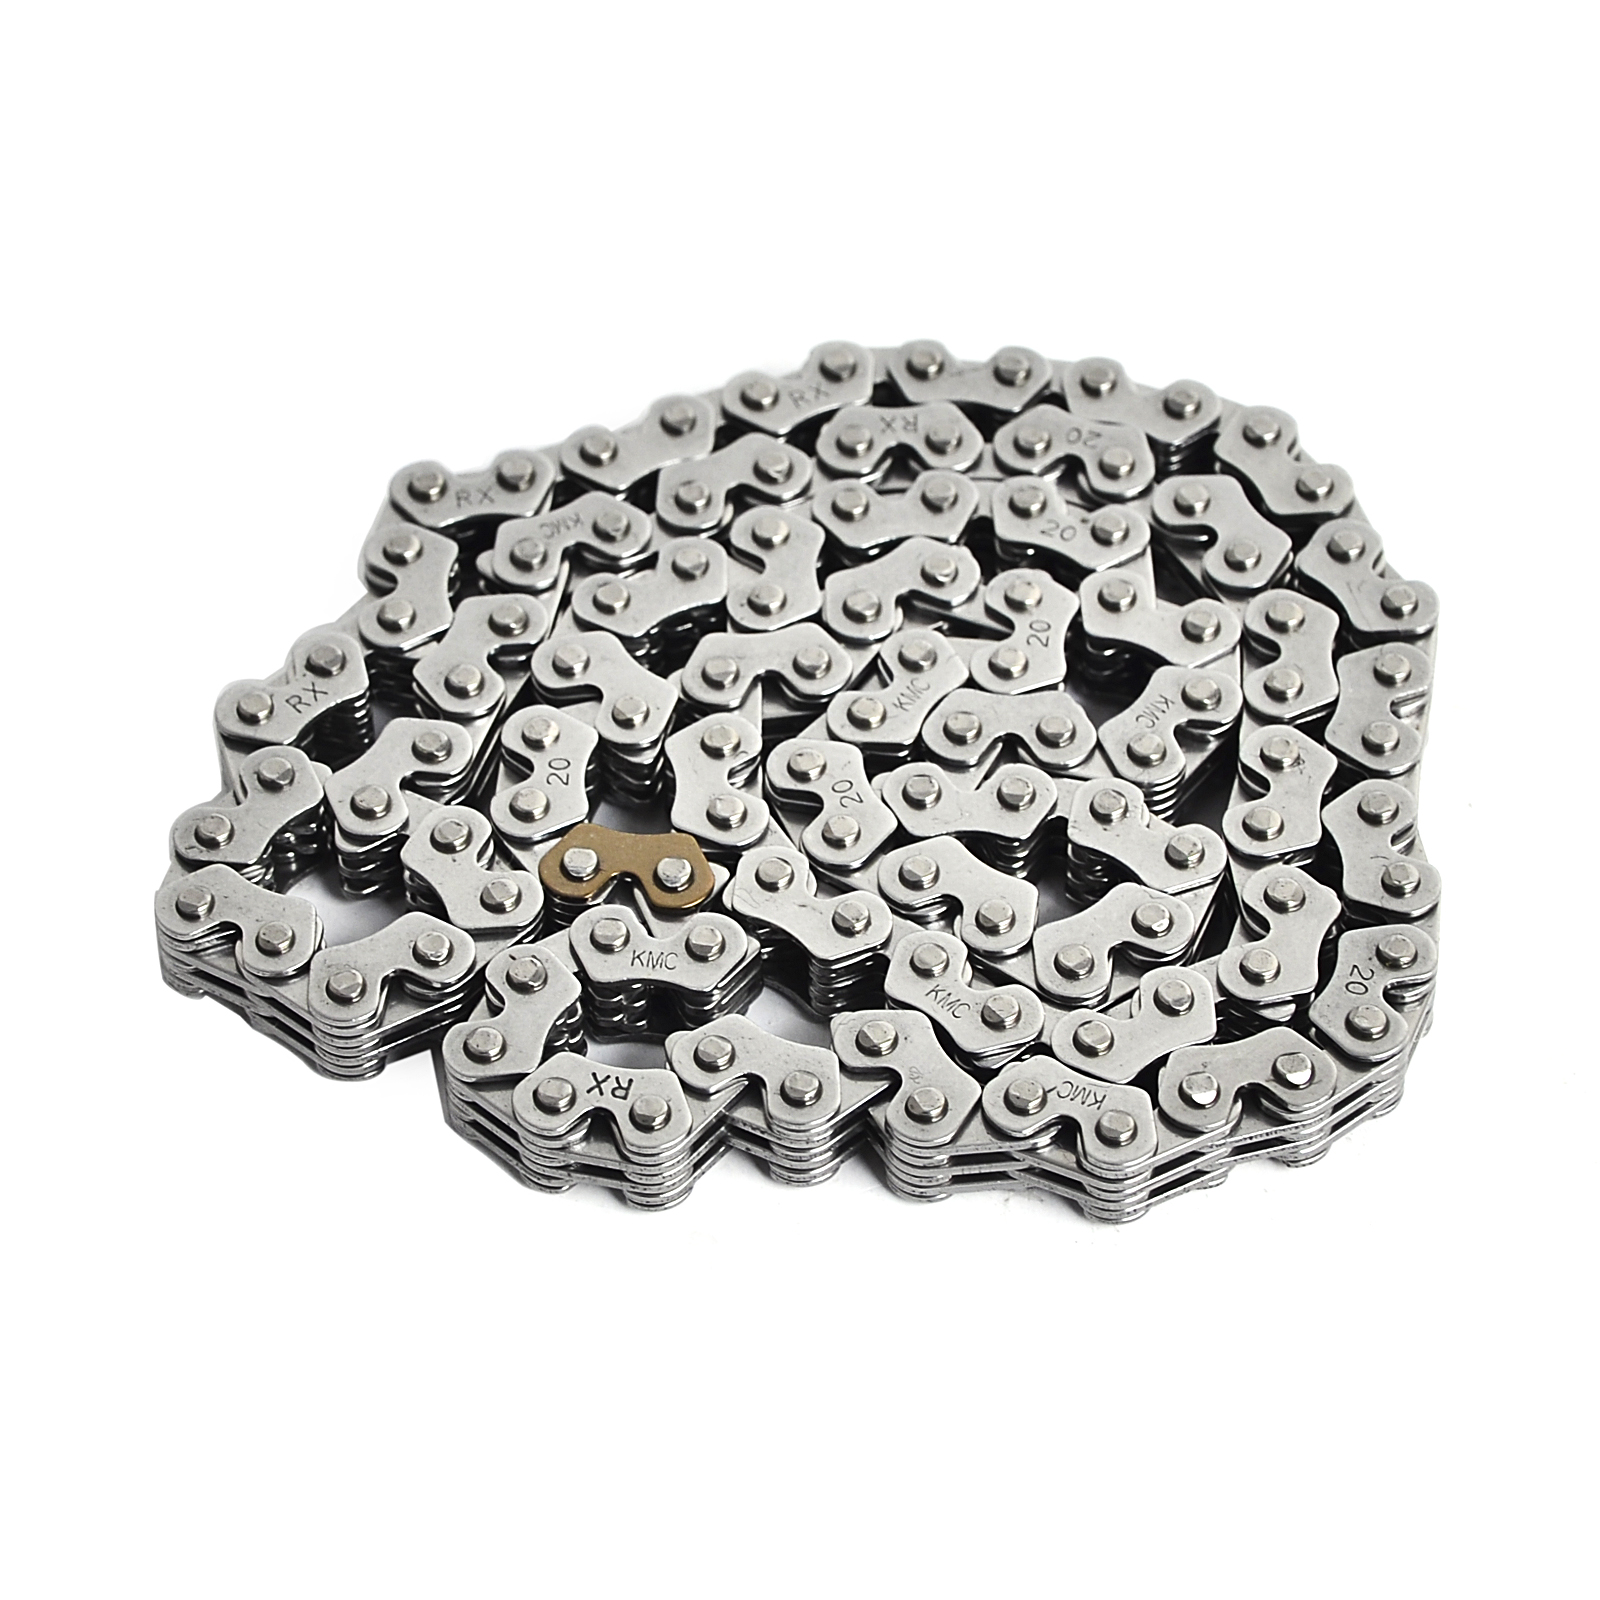 KMC Cam Timing Roller Chain For Yamaha FZR250 1986-1993 Replace 14401-KCY-671